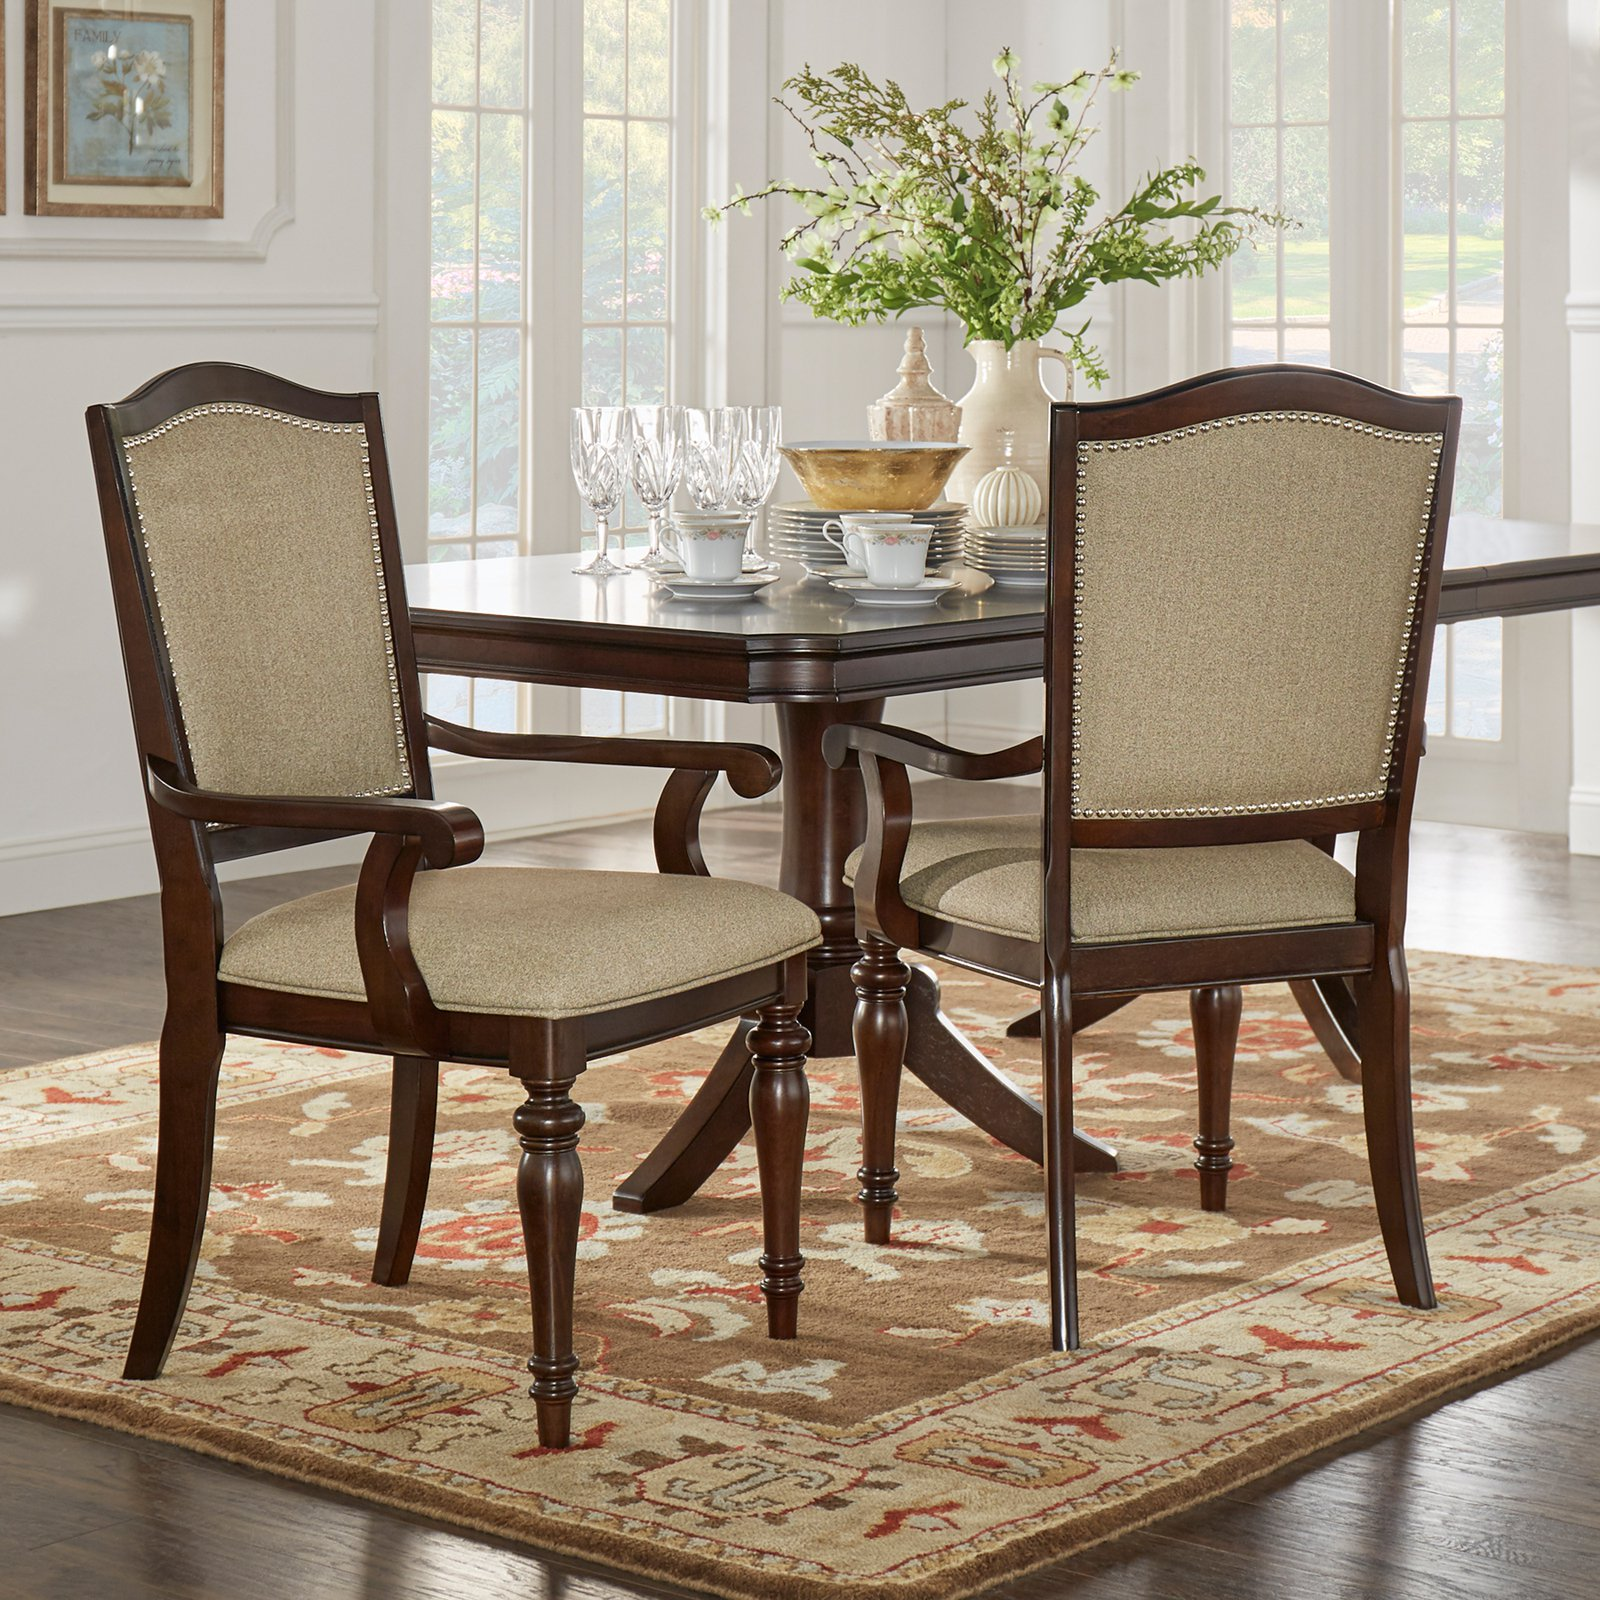 Homelegance Marston Nailhead Dining Armchair Set of 2 by Top-Line dba Homelegance